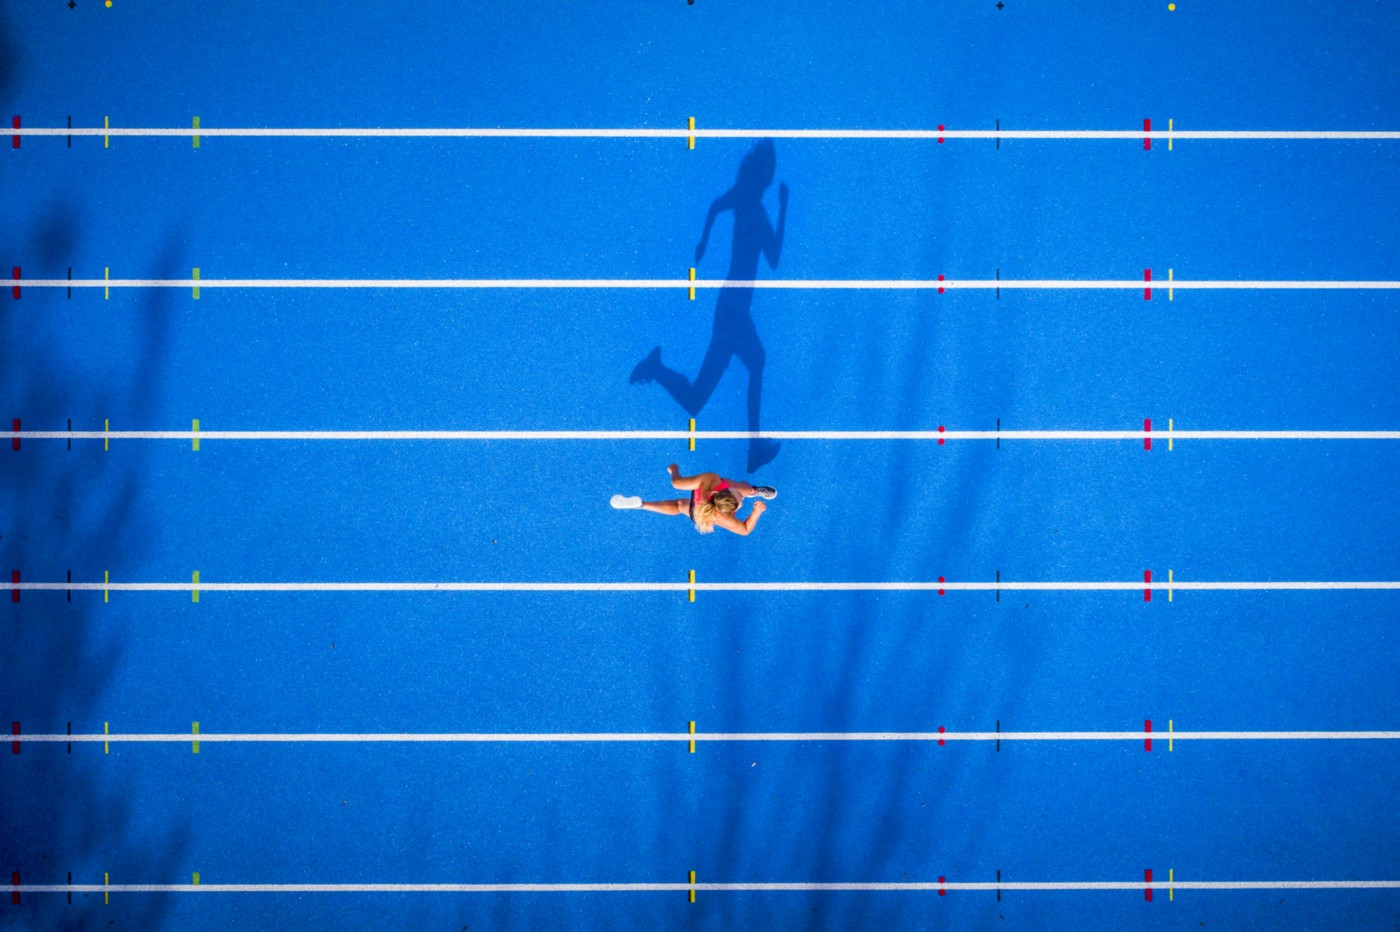 An aerial photo of a person running on a track. Their shadow looks like it's running.